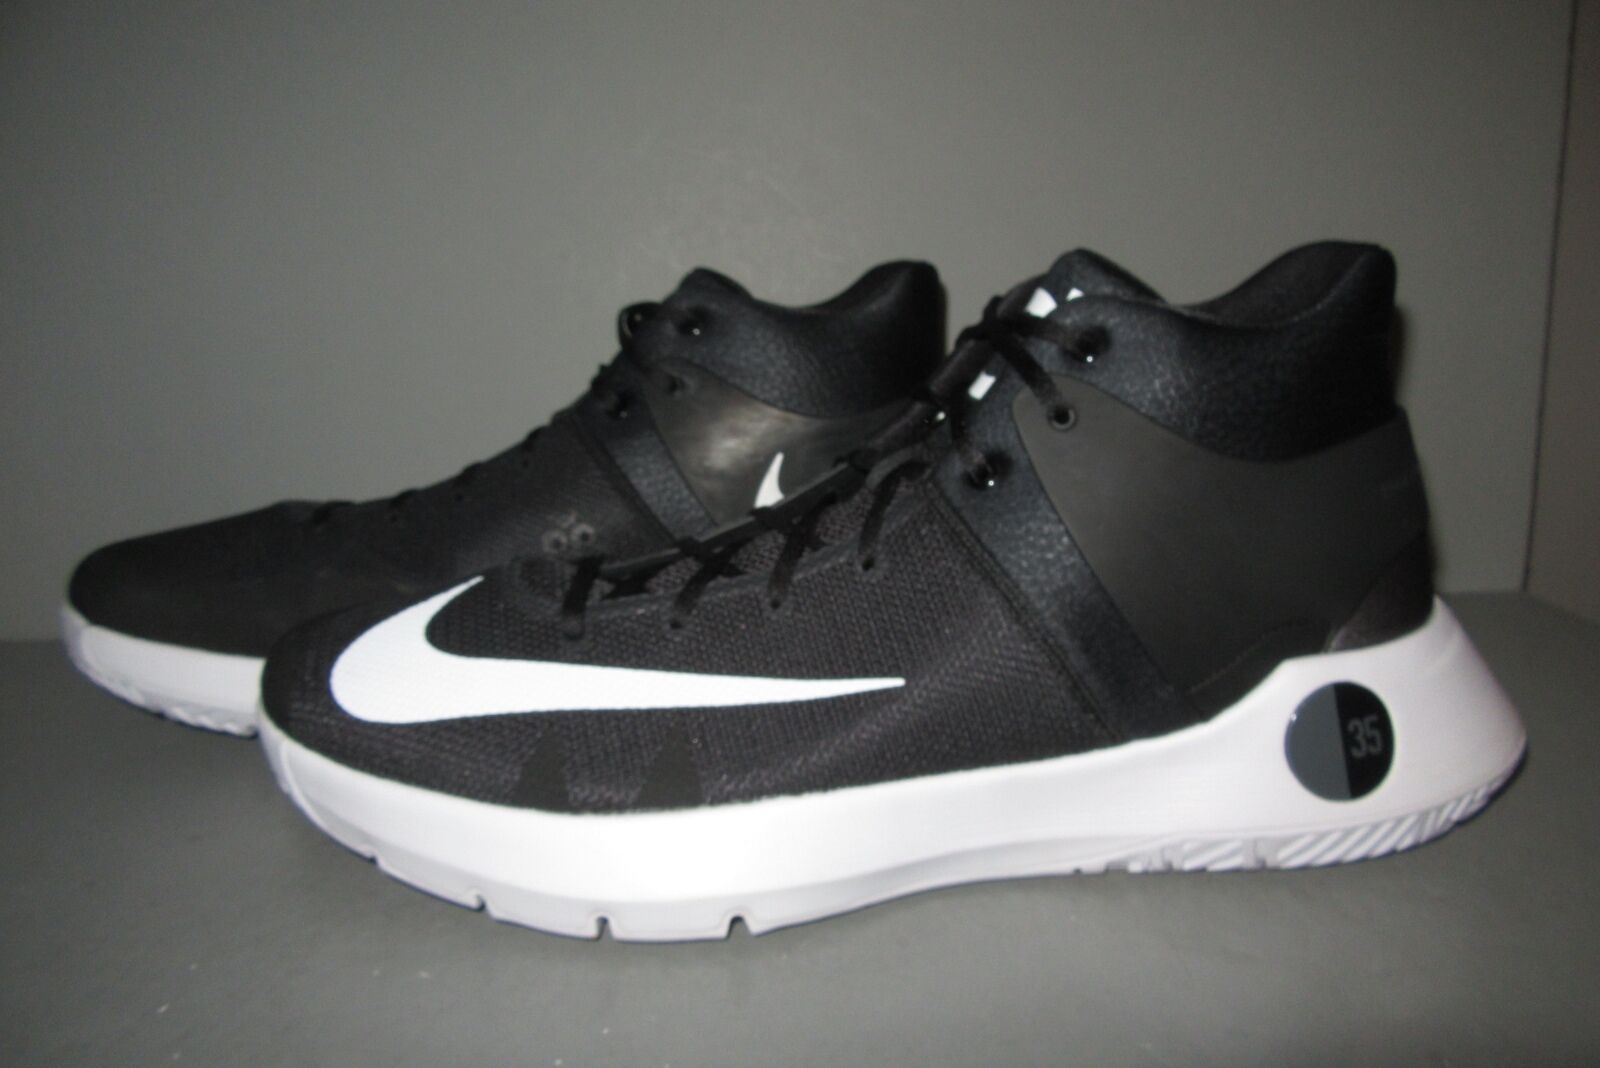 new style d49a7 42ac8 NIKE KD TREY 5 IV - MEN S Size Size Size 18 Kevin Durant Black White Dark